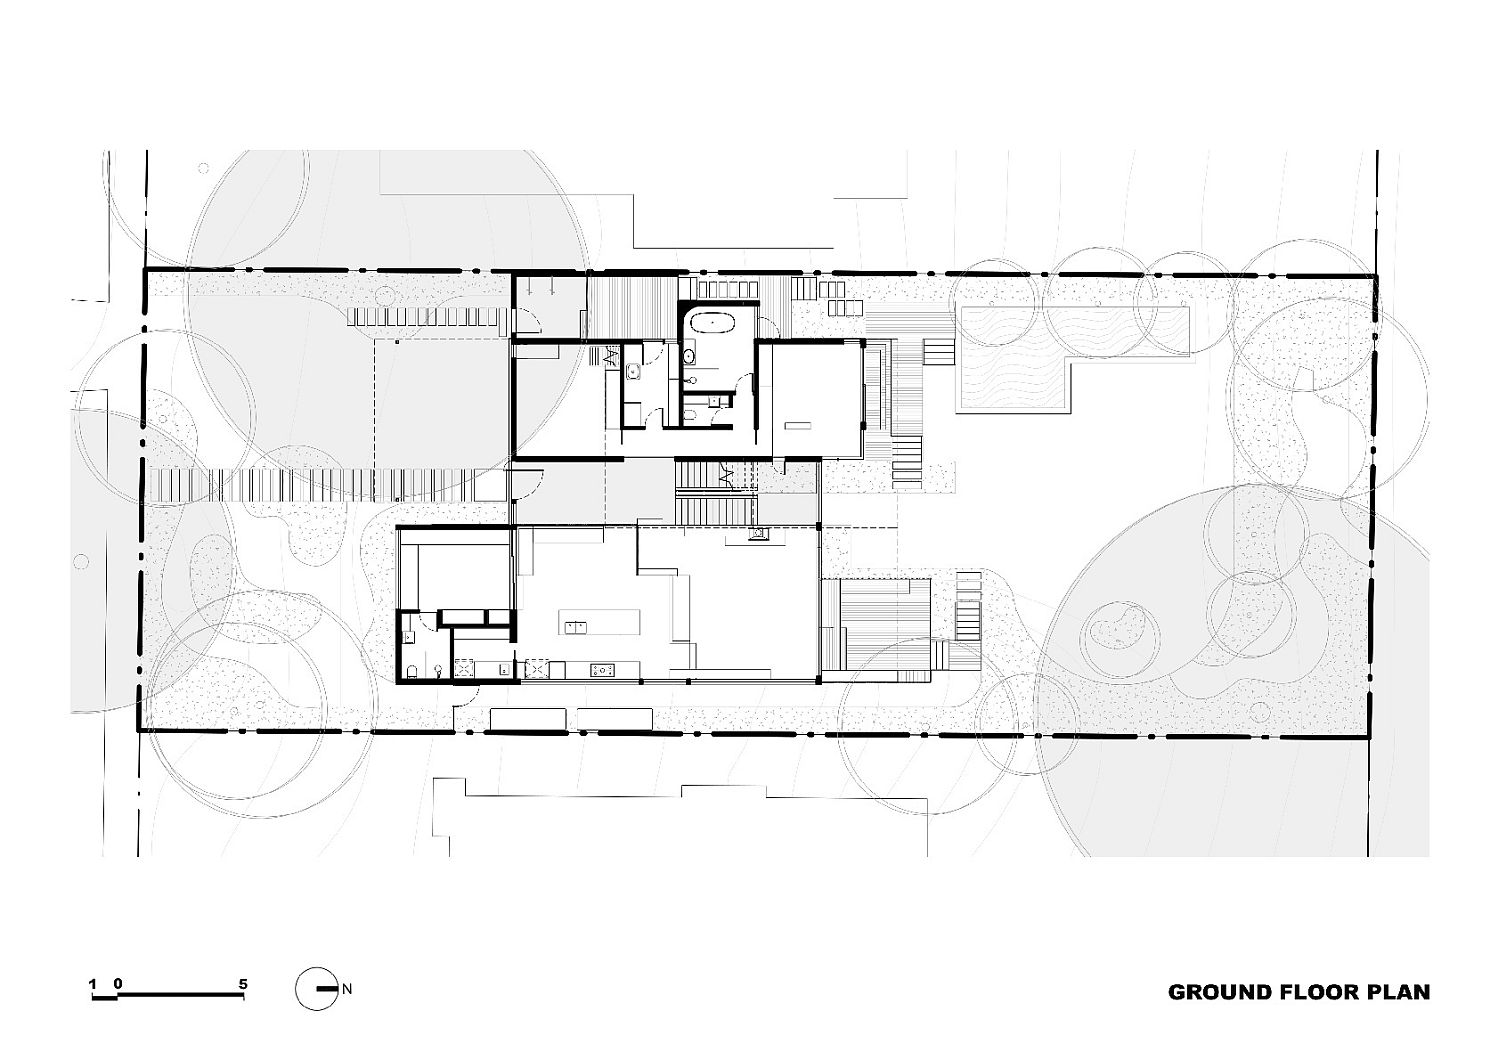 Ground floor plan of the Melbourne home